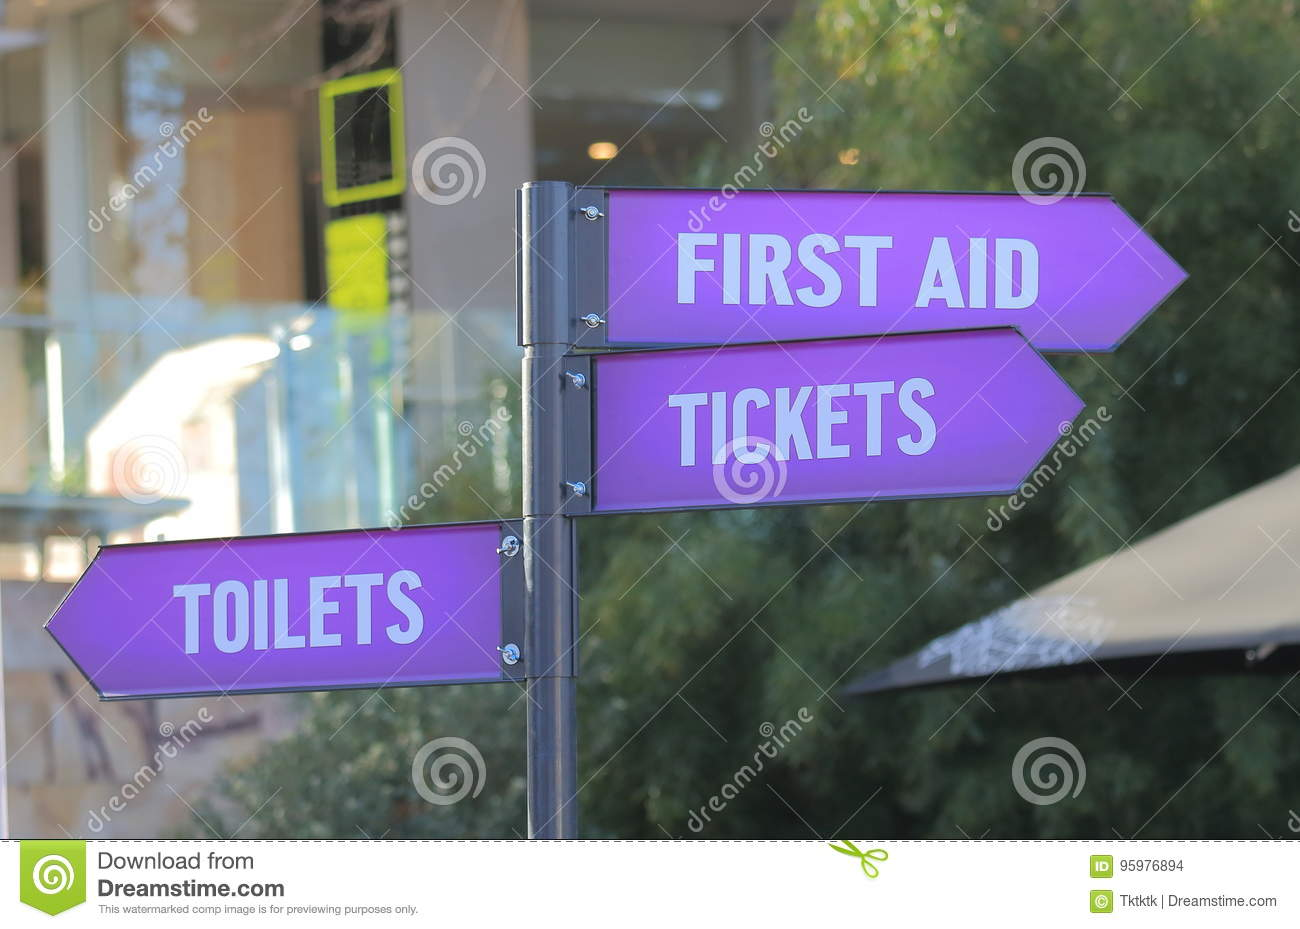 Download First Aid Ticket Toilet Sign Stock Photo - Image of information, attraction: 95976894